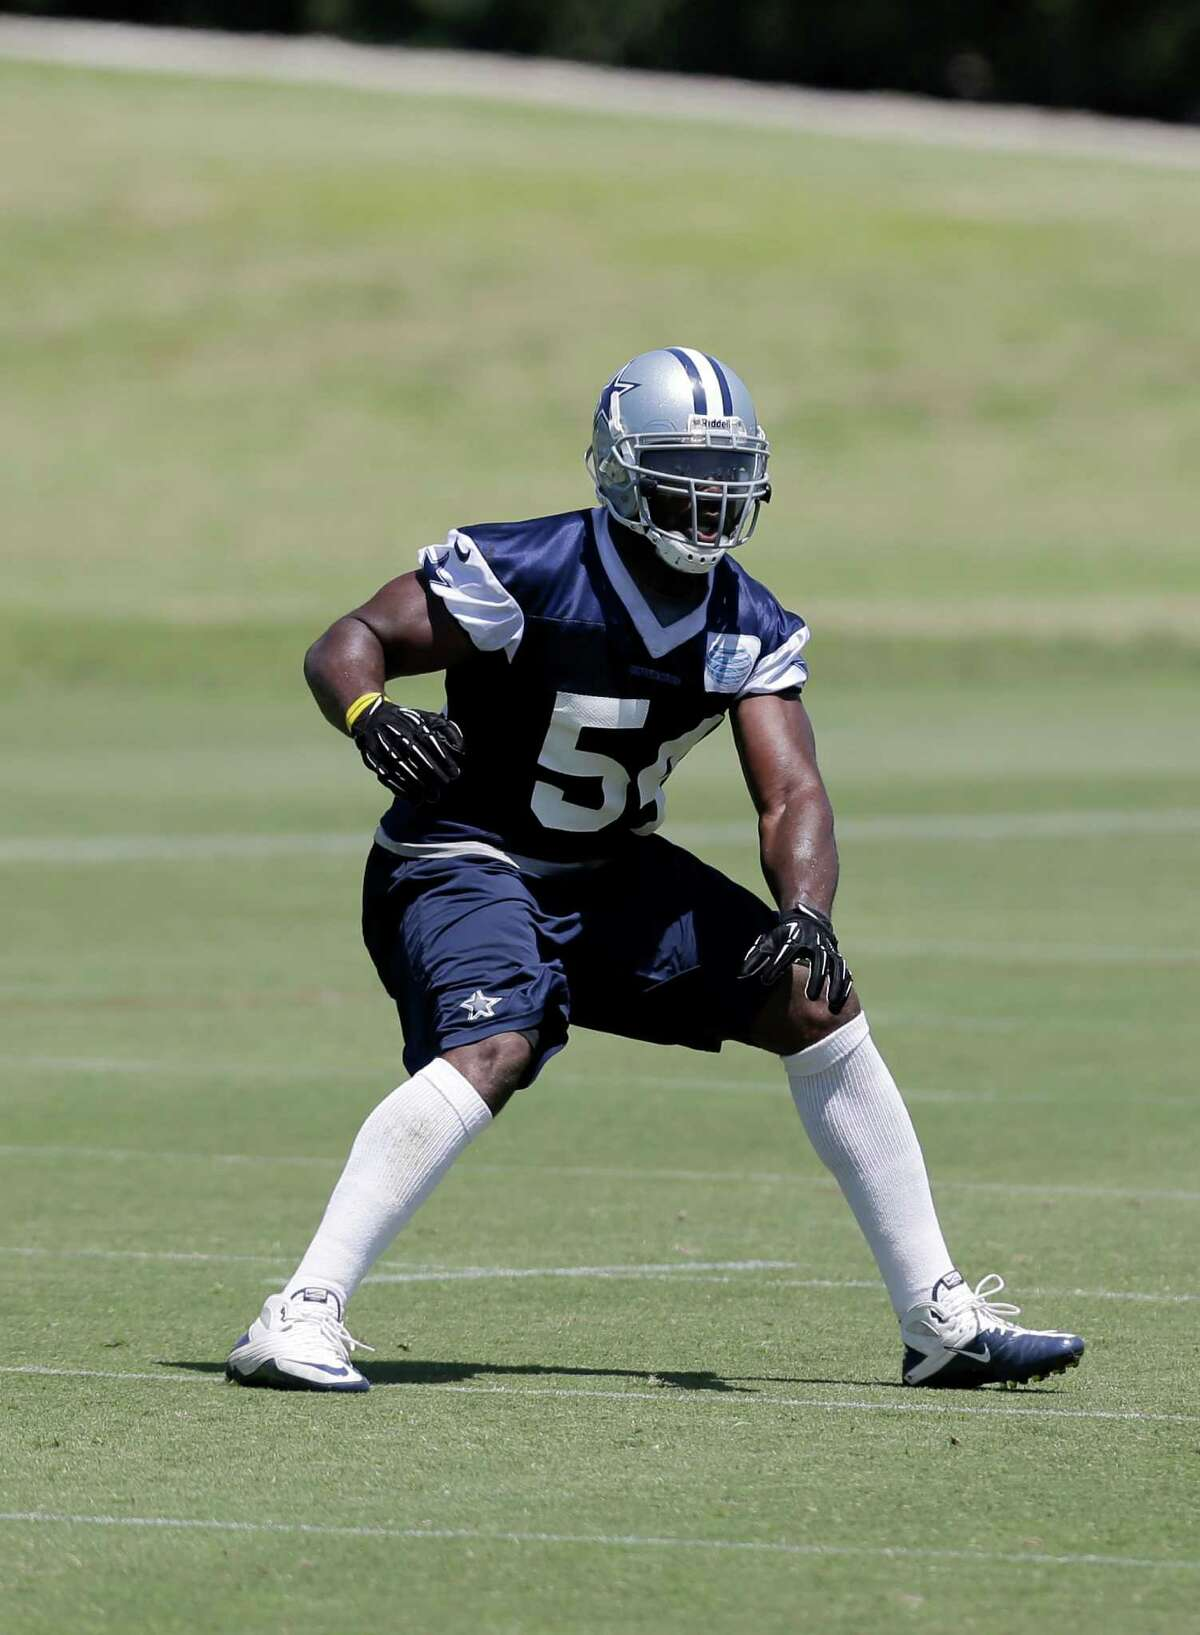 Dallas Cowboys linebacker Bruce Carter (54) defends at the line of scrimmage as the team runs a play during their NFL football minicamp on Thursday, June 13, 2013, in Irving, Texas. (AP Photo/Tony Gutierrez)